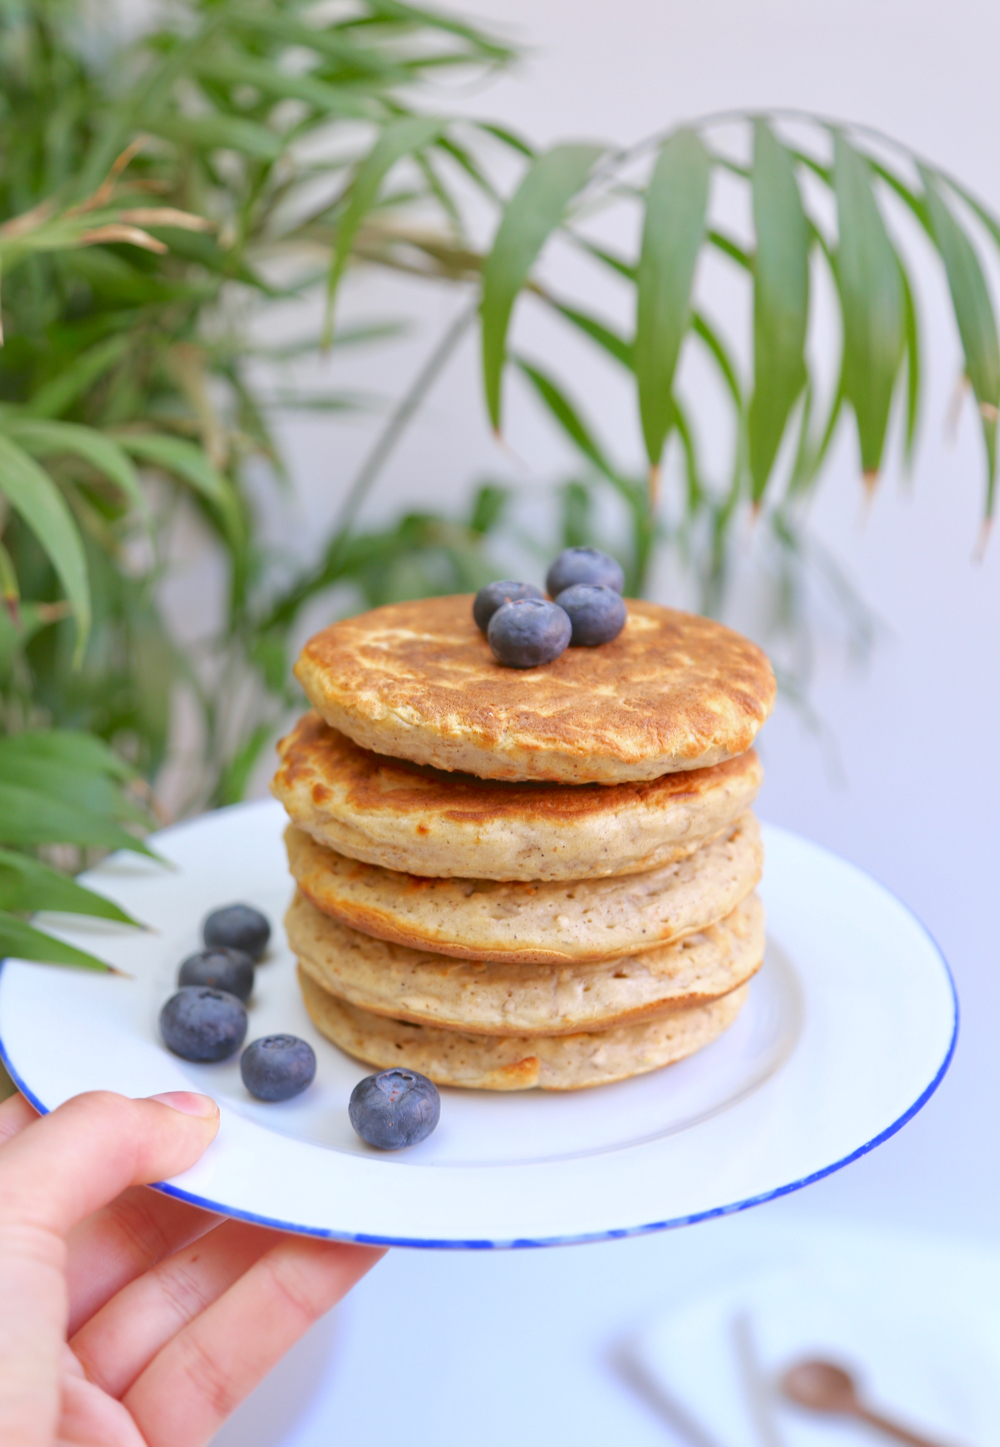 Pancakes healthy - 2